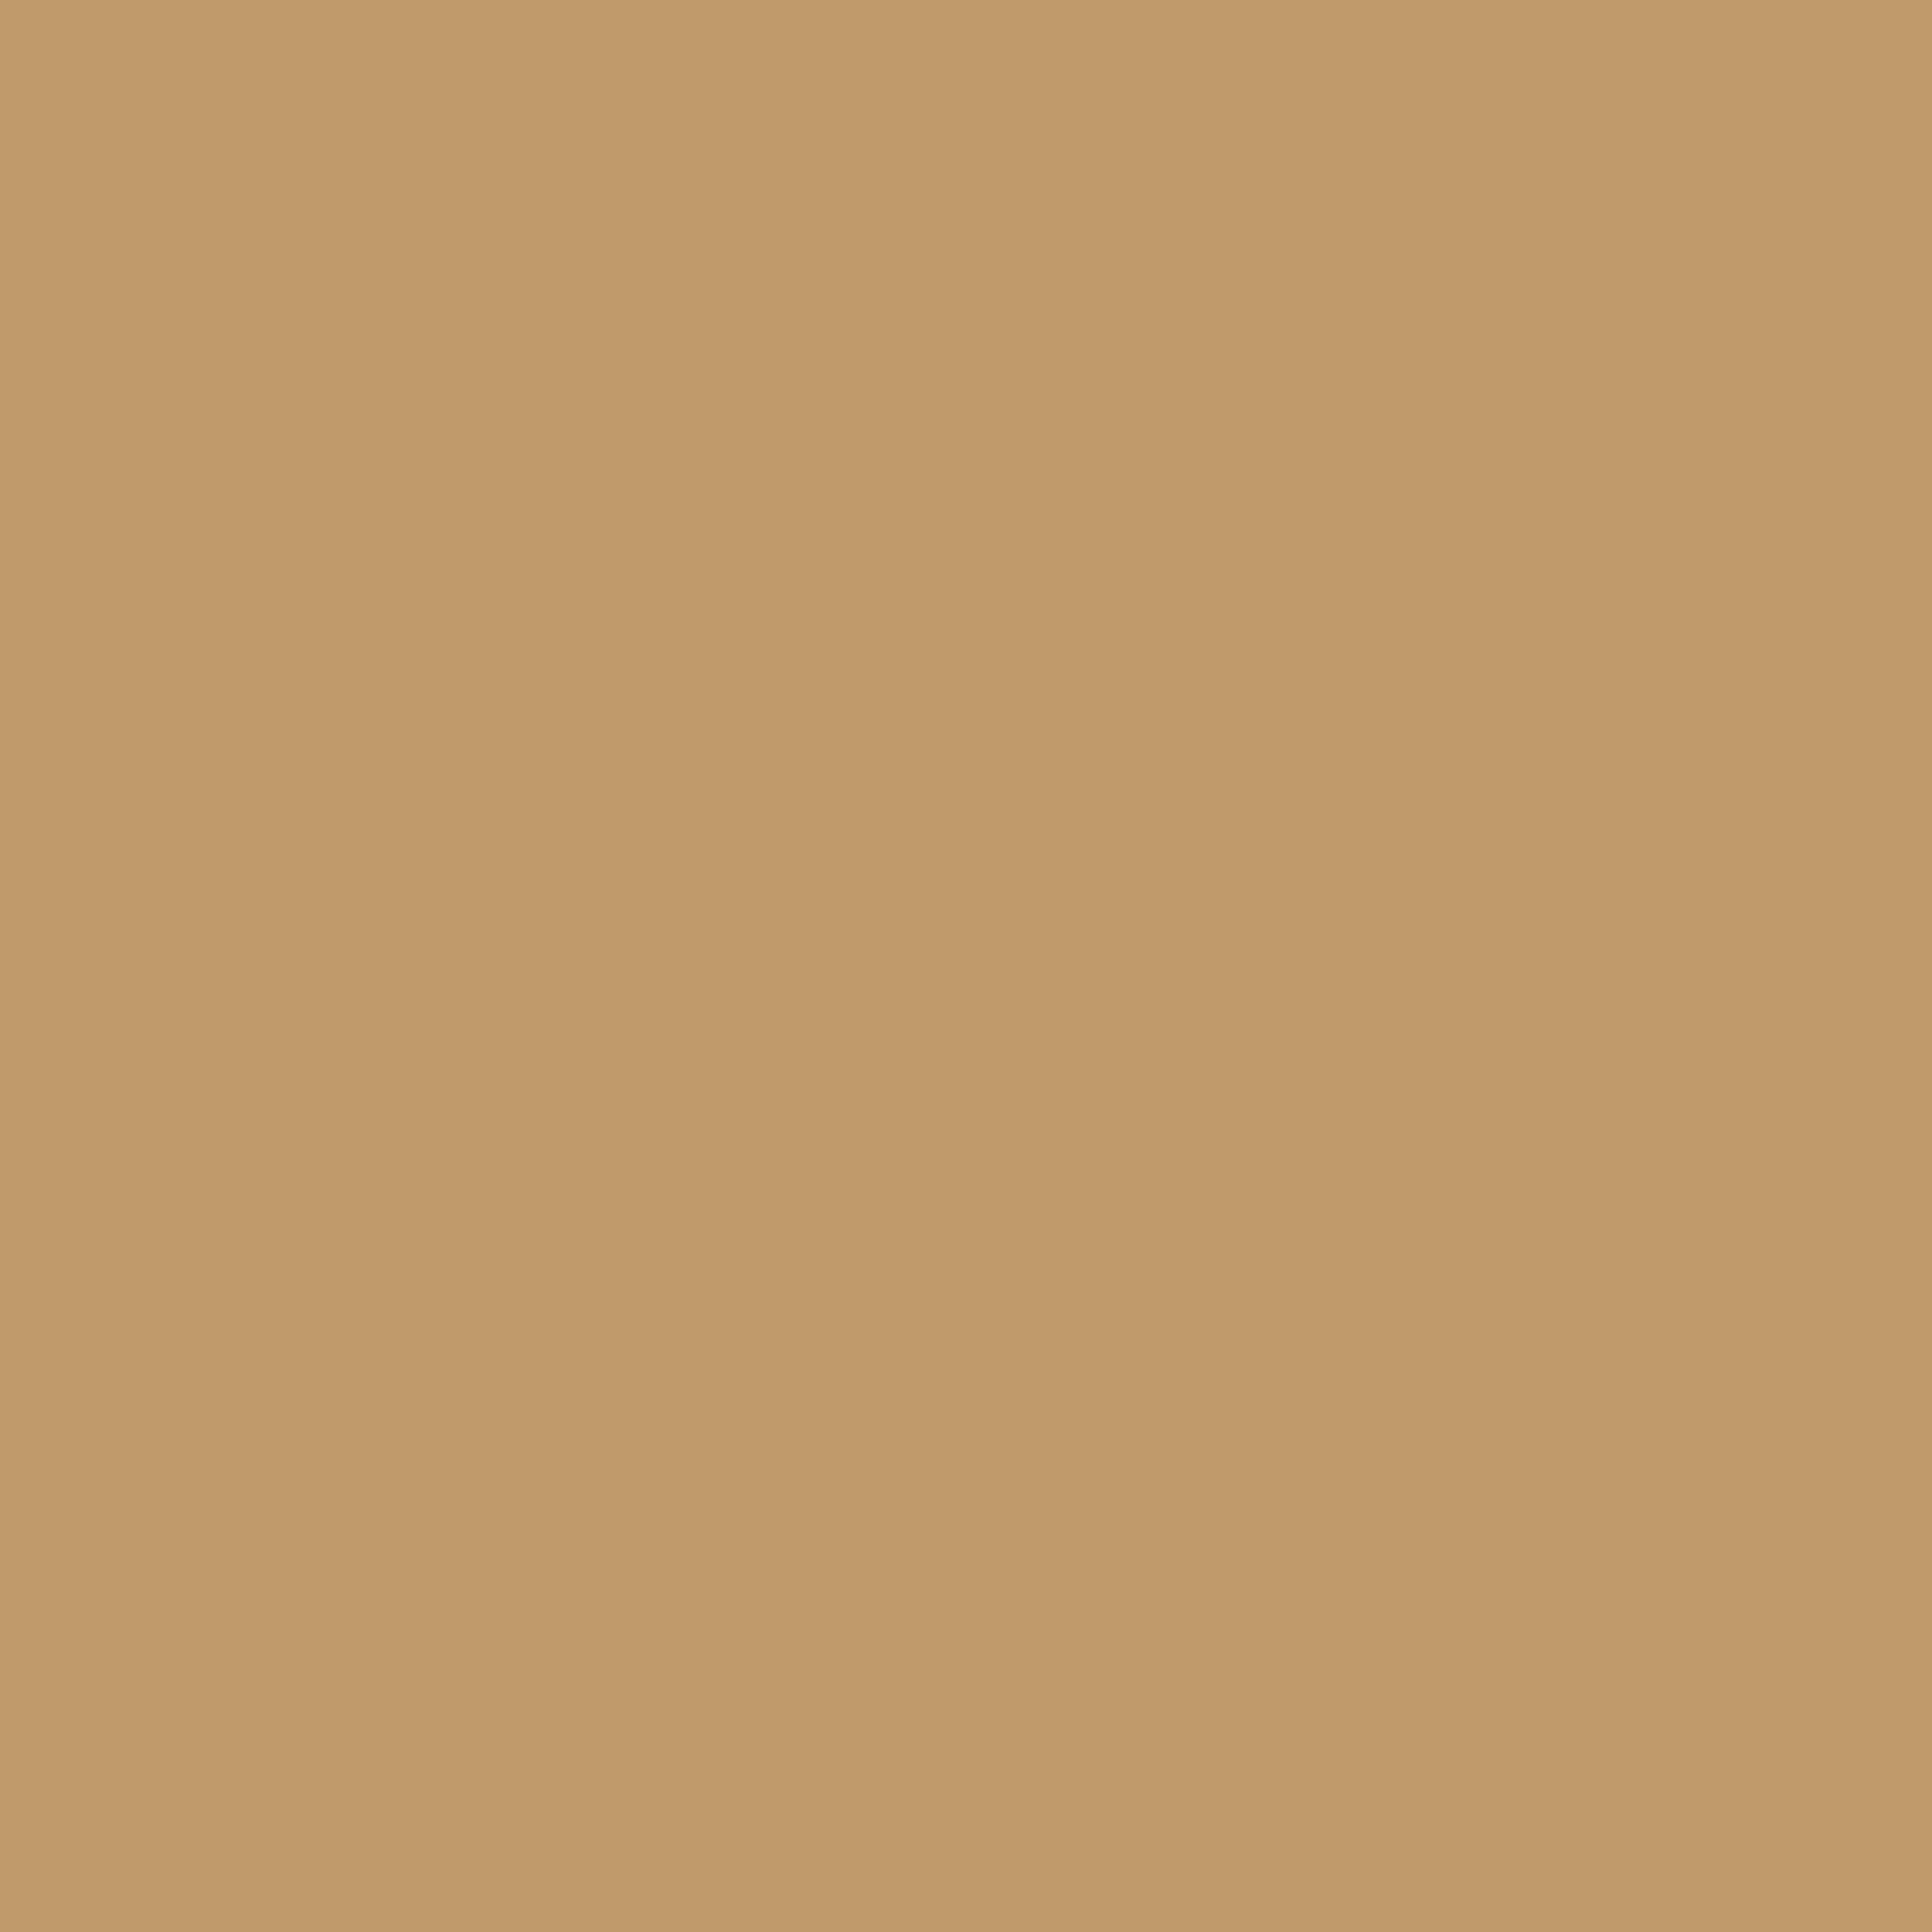 2732x2732 Wood Brown Solid Color Background